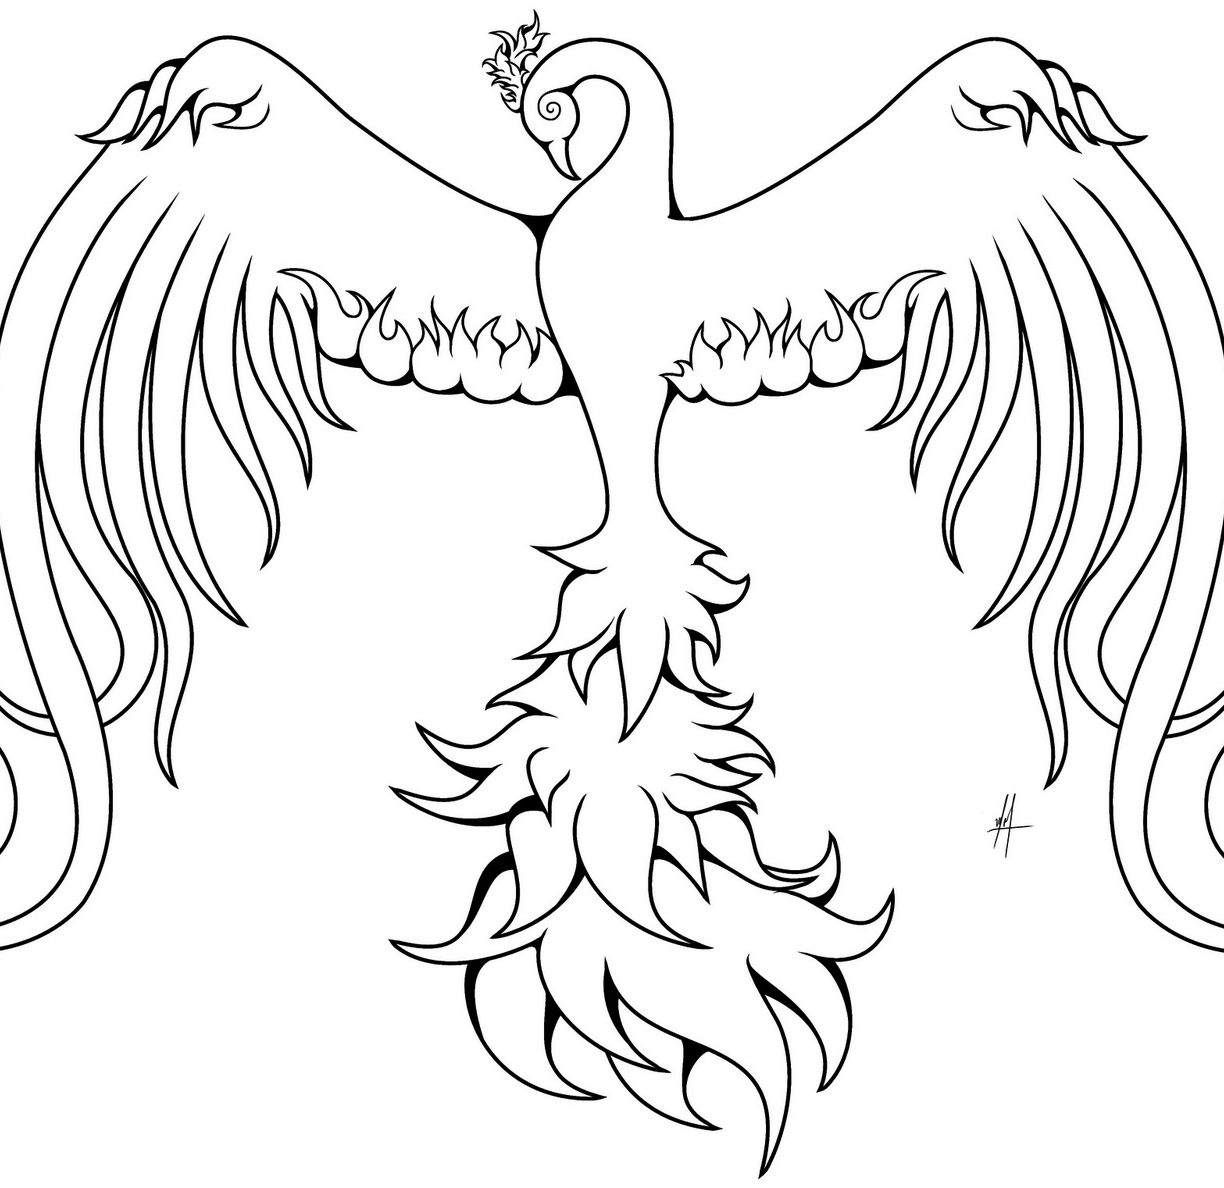 phoenix coloring pages phoenix coloring page at getdrawings free download pages phoenix coloring